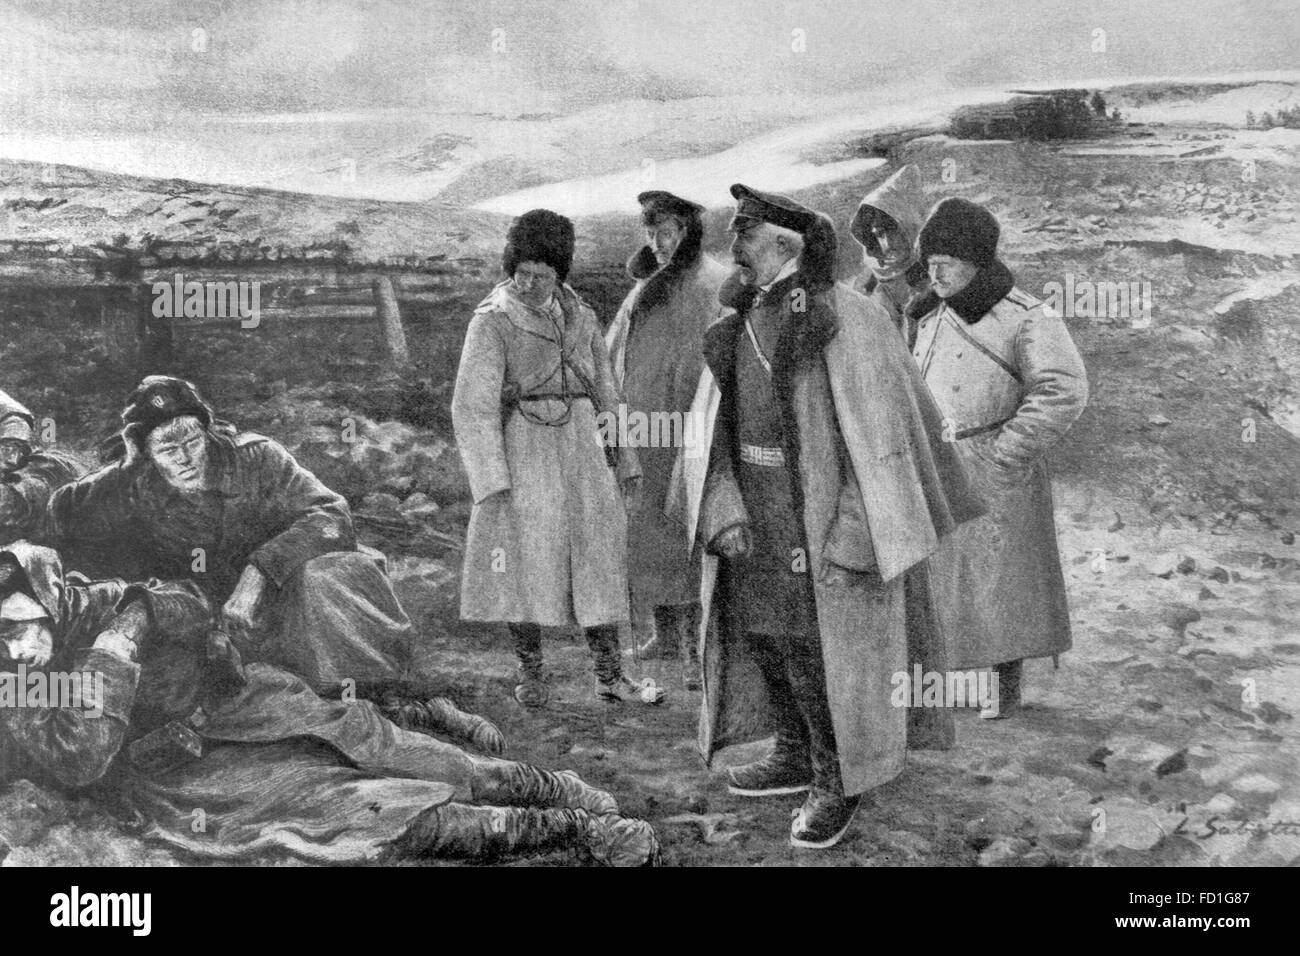 Russo-Japanese War (1904-1905). Last days of Port Arthur resistance. The Russian General Anatoly Stessel (1848-1915) - Stock Image